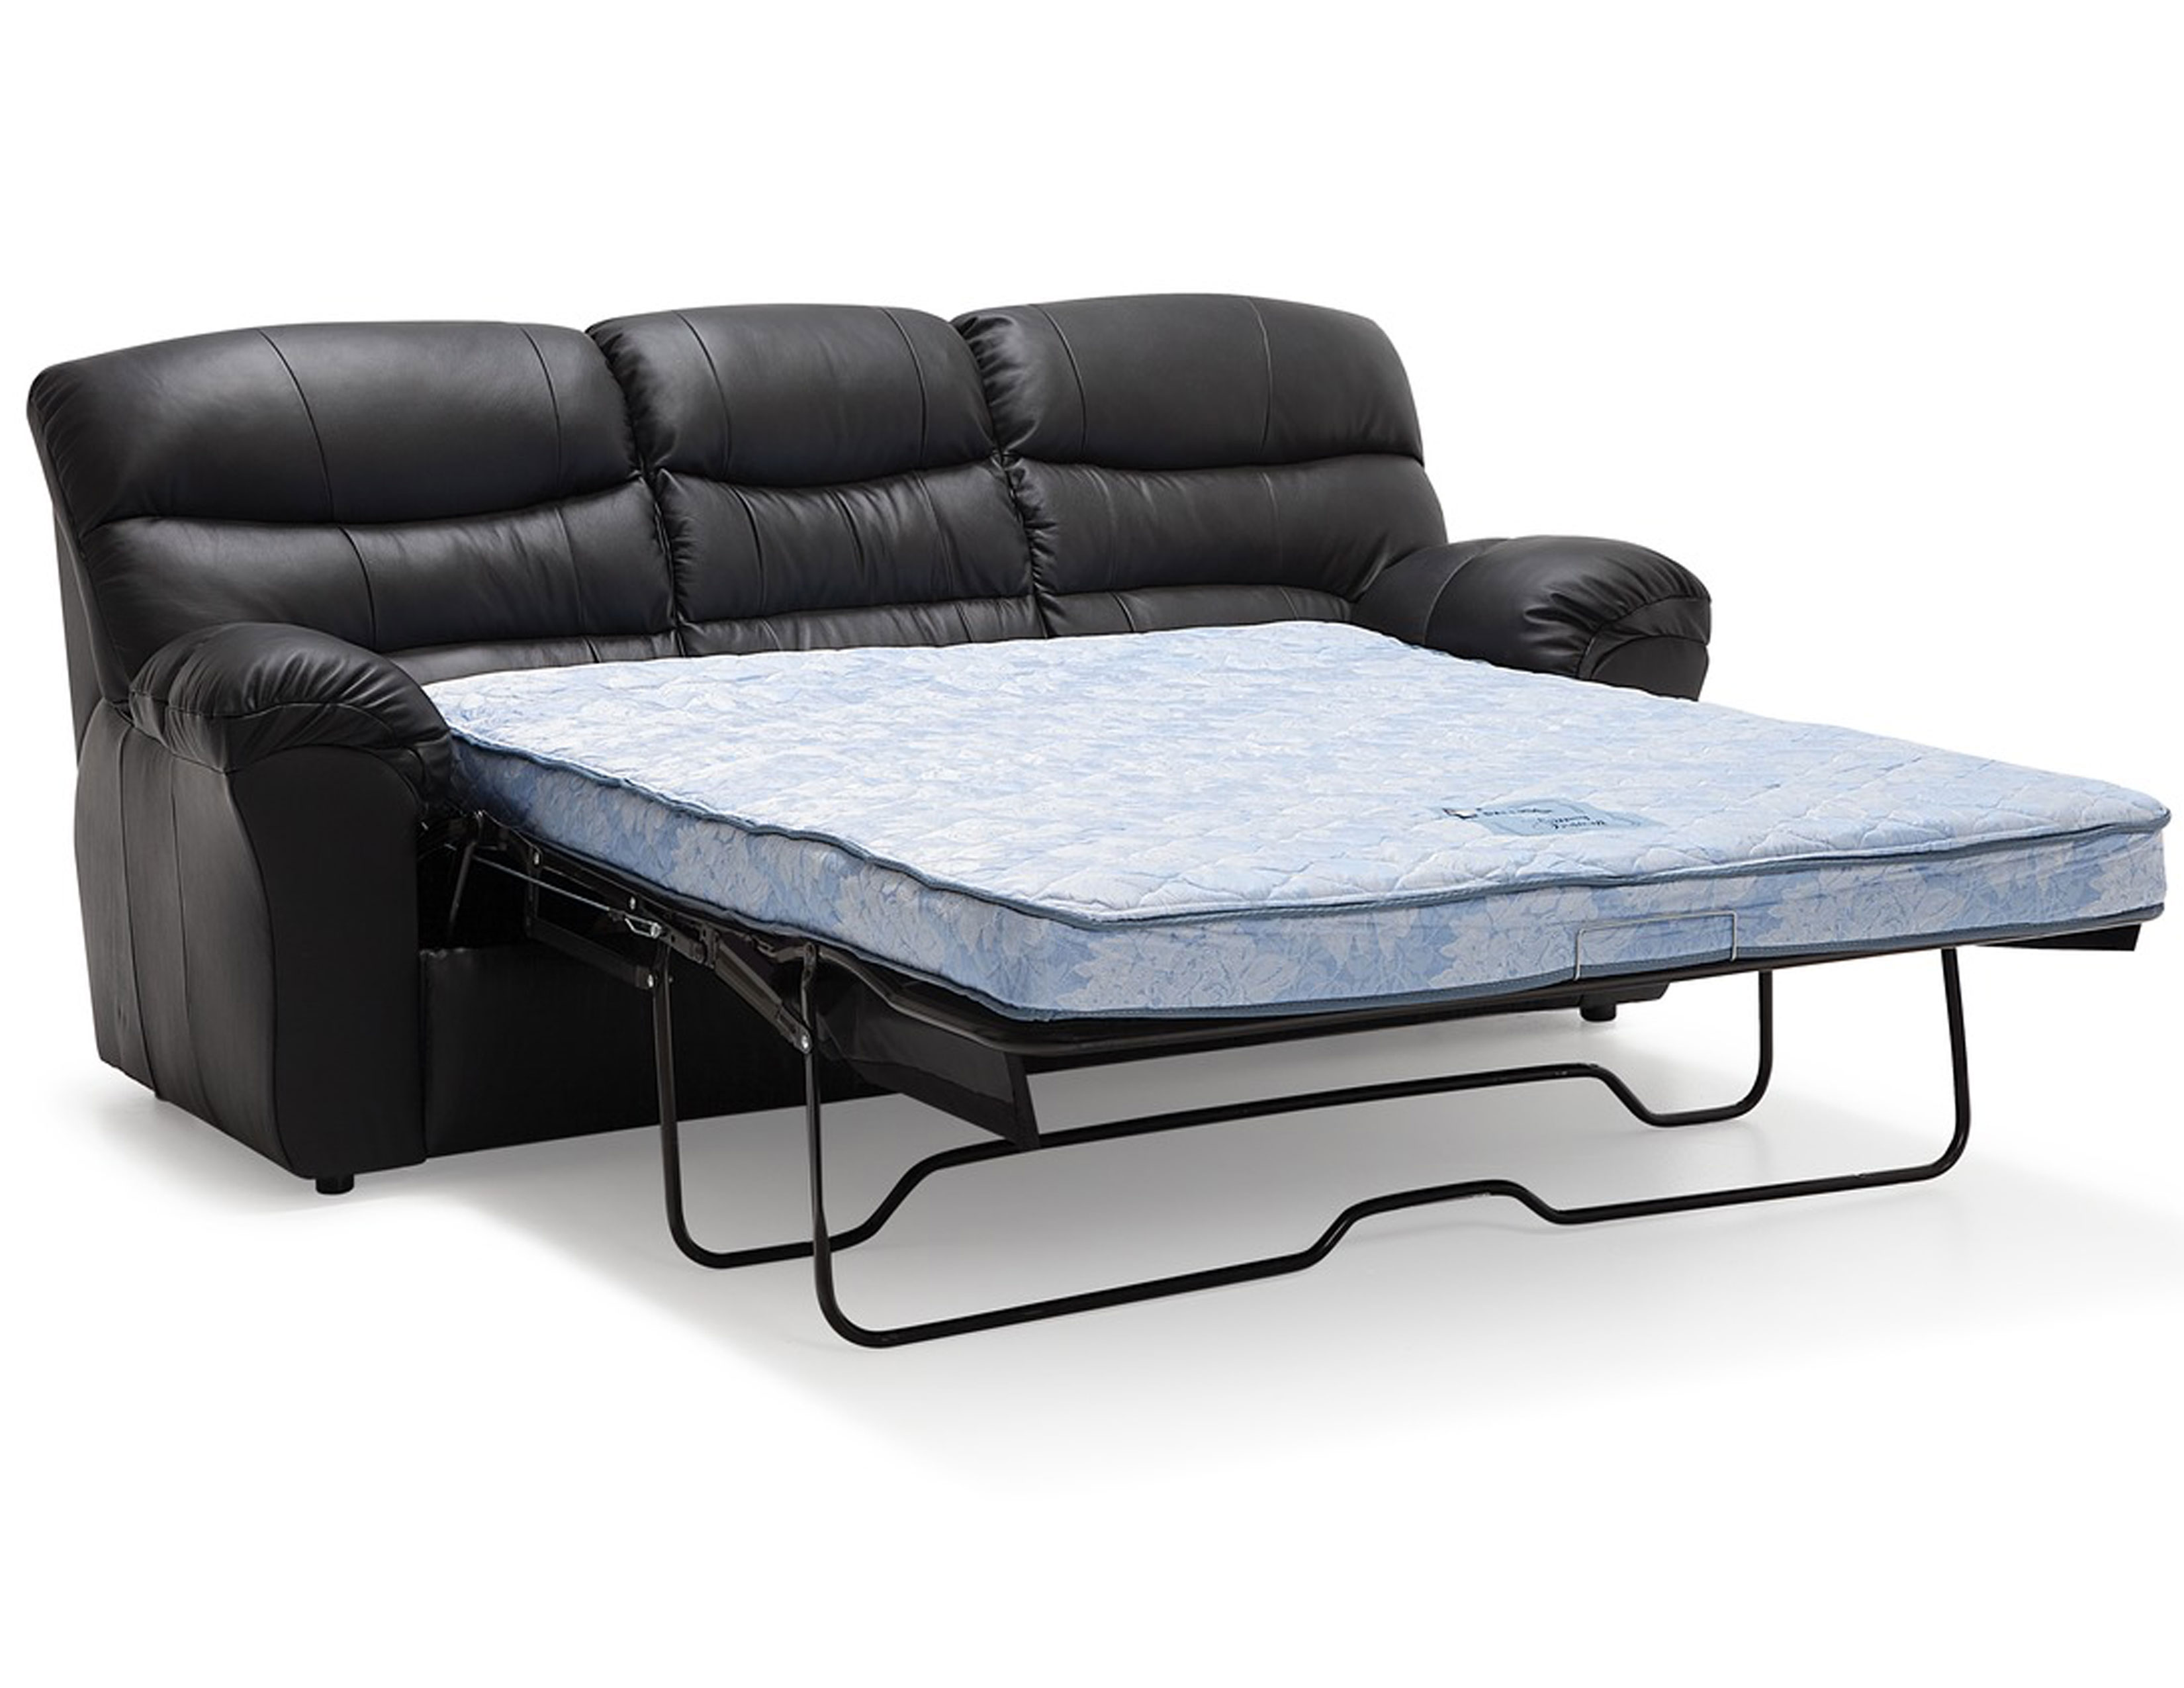 Durant Queen Size Sofa Sleeper - 350 Leathers   Sofas and ...